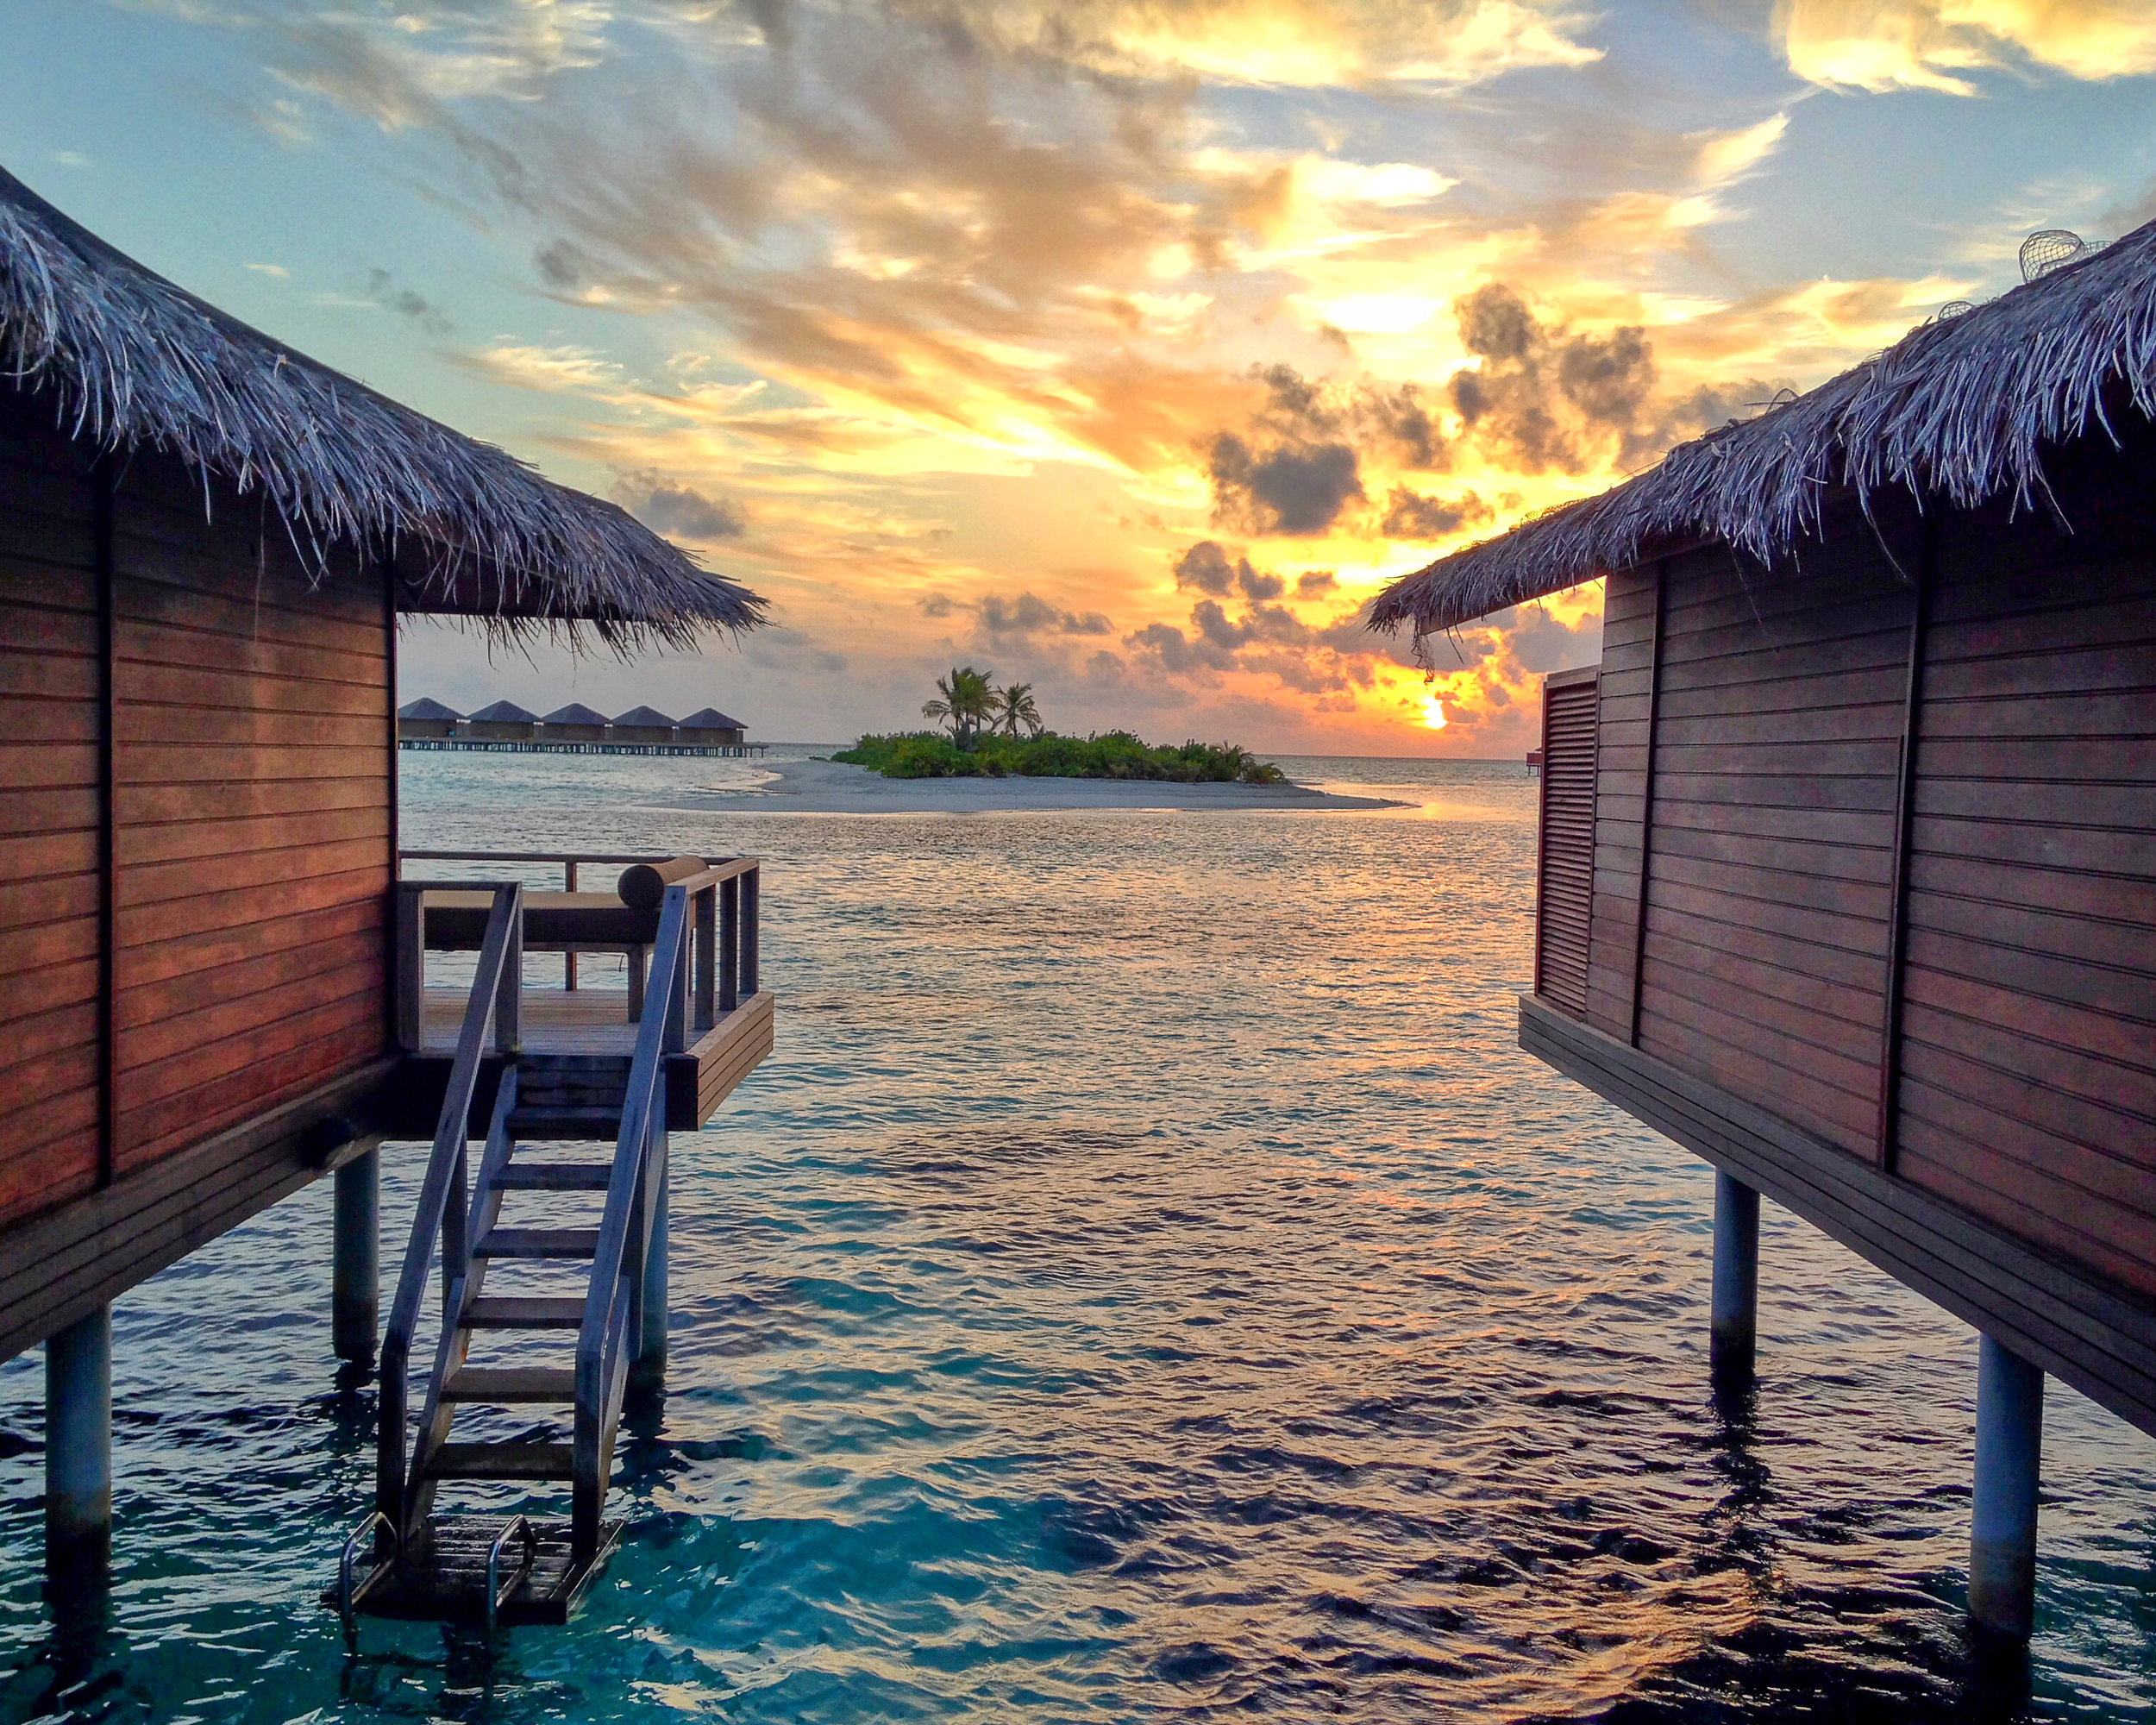 Maldives Sunset Between Bungalows